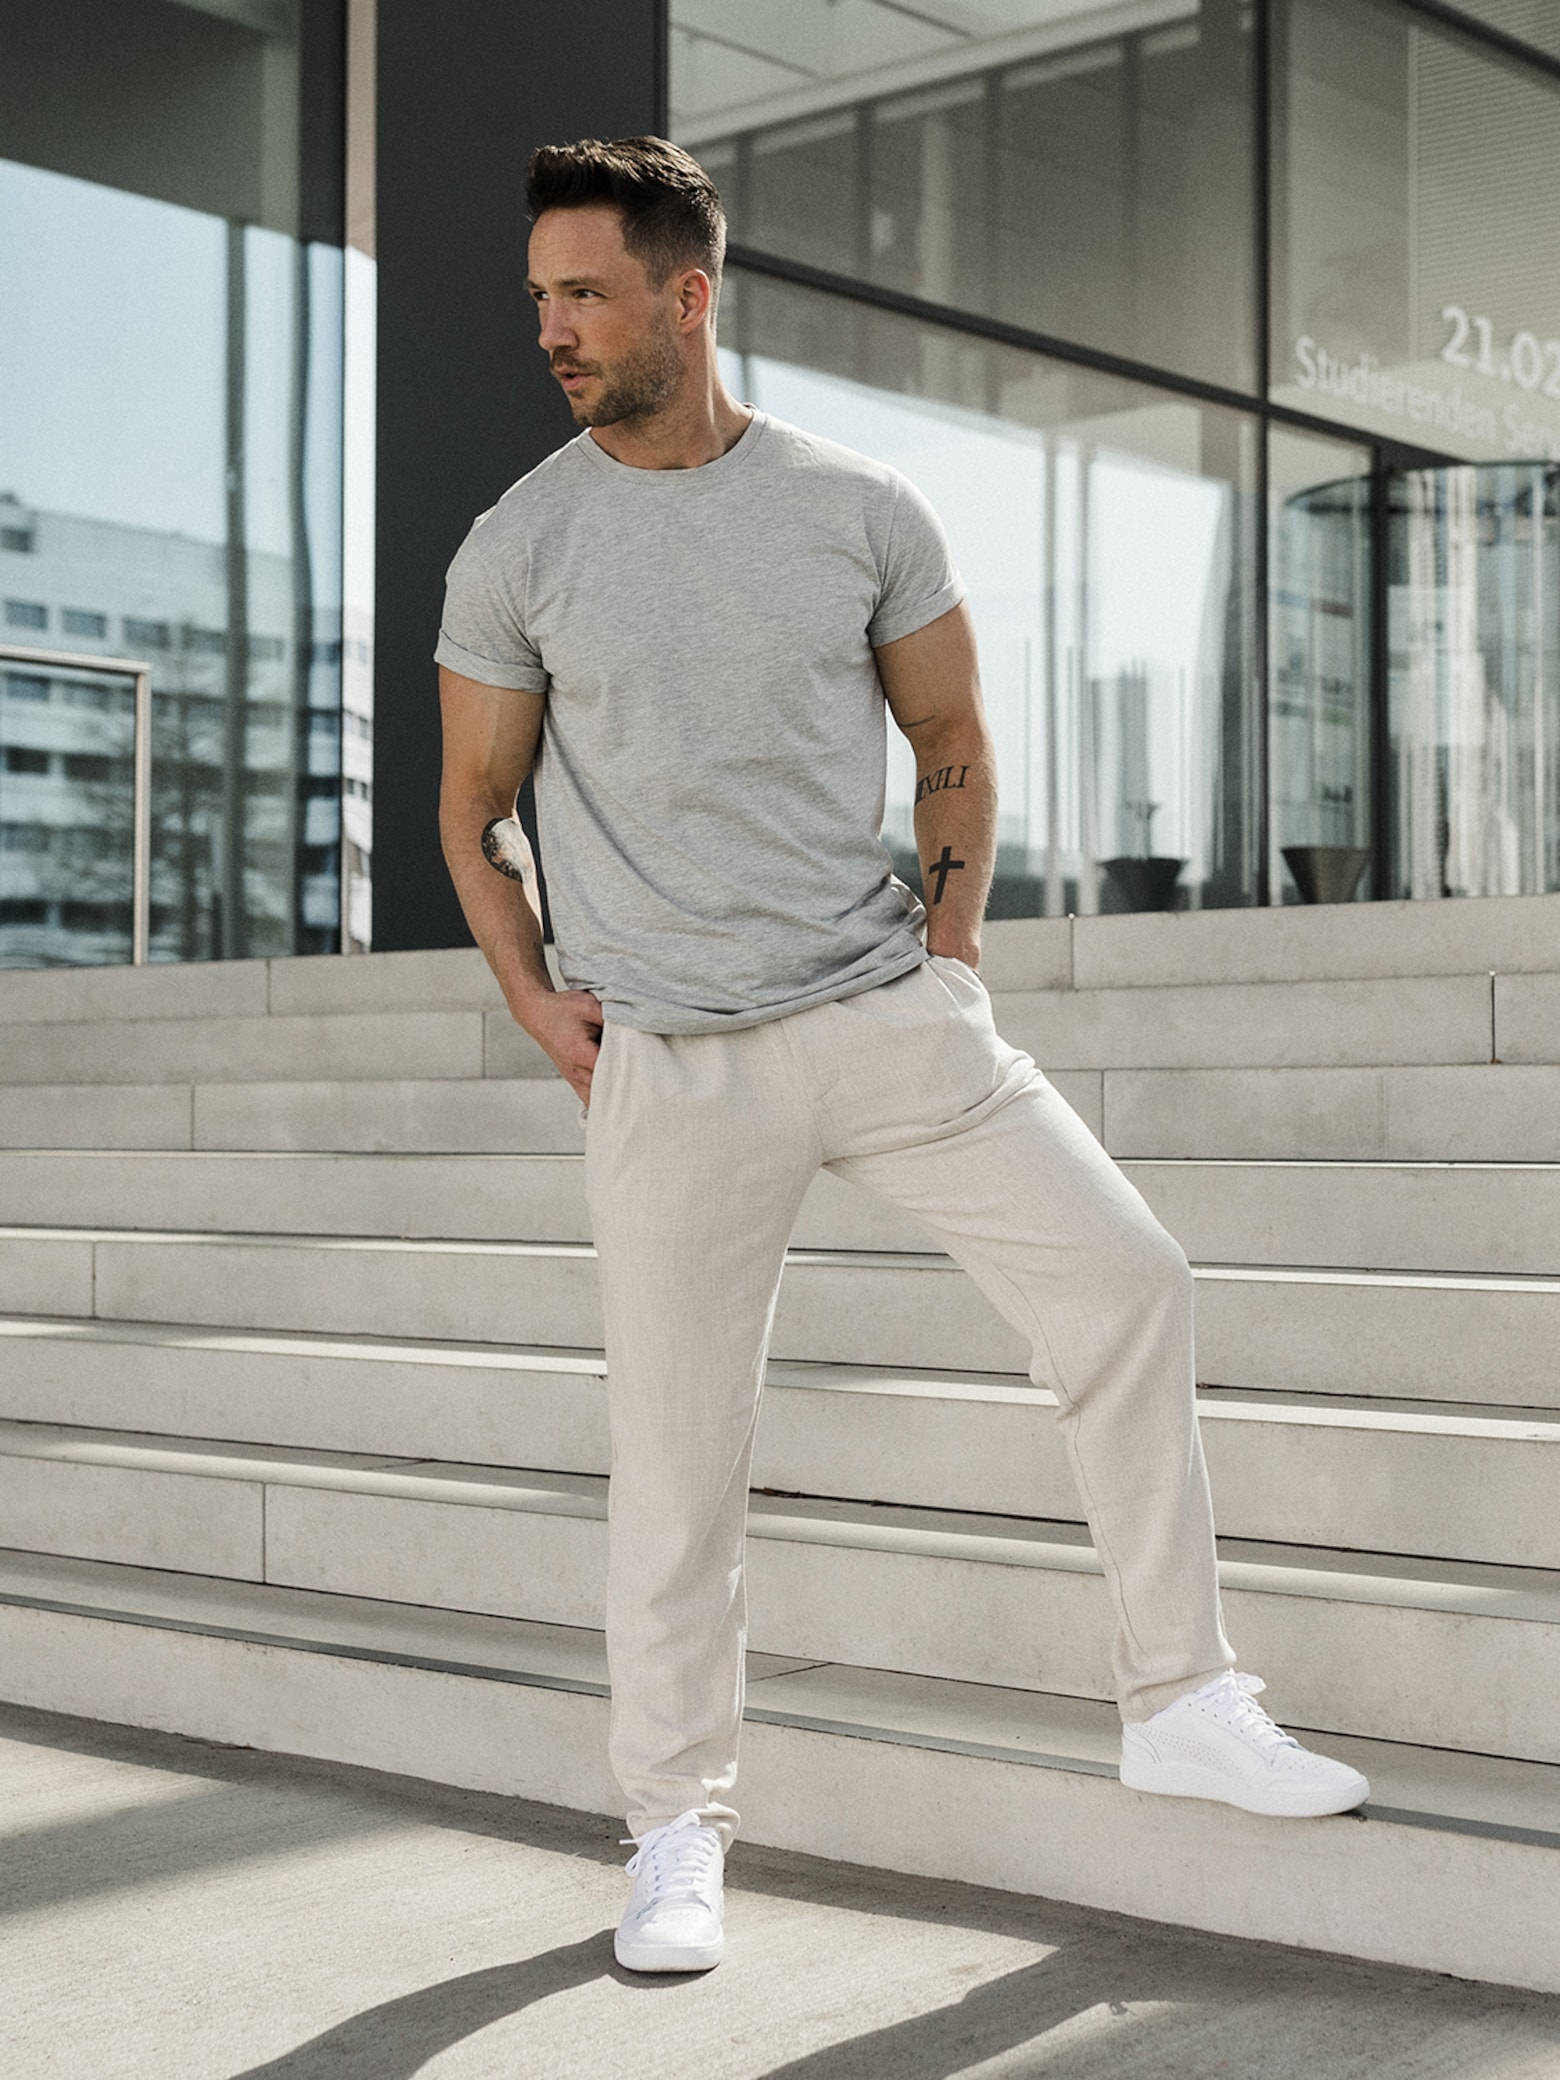 Daniel Fuchs - Sporty Everyday Look